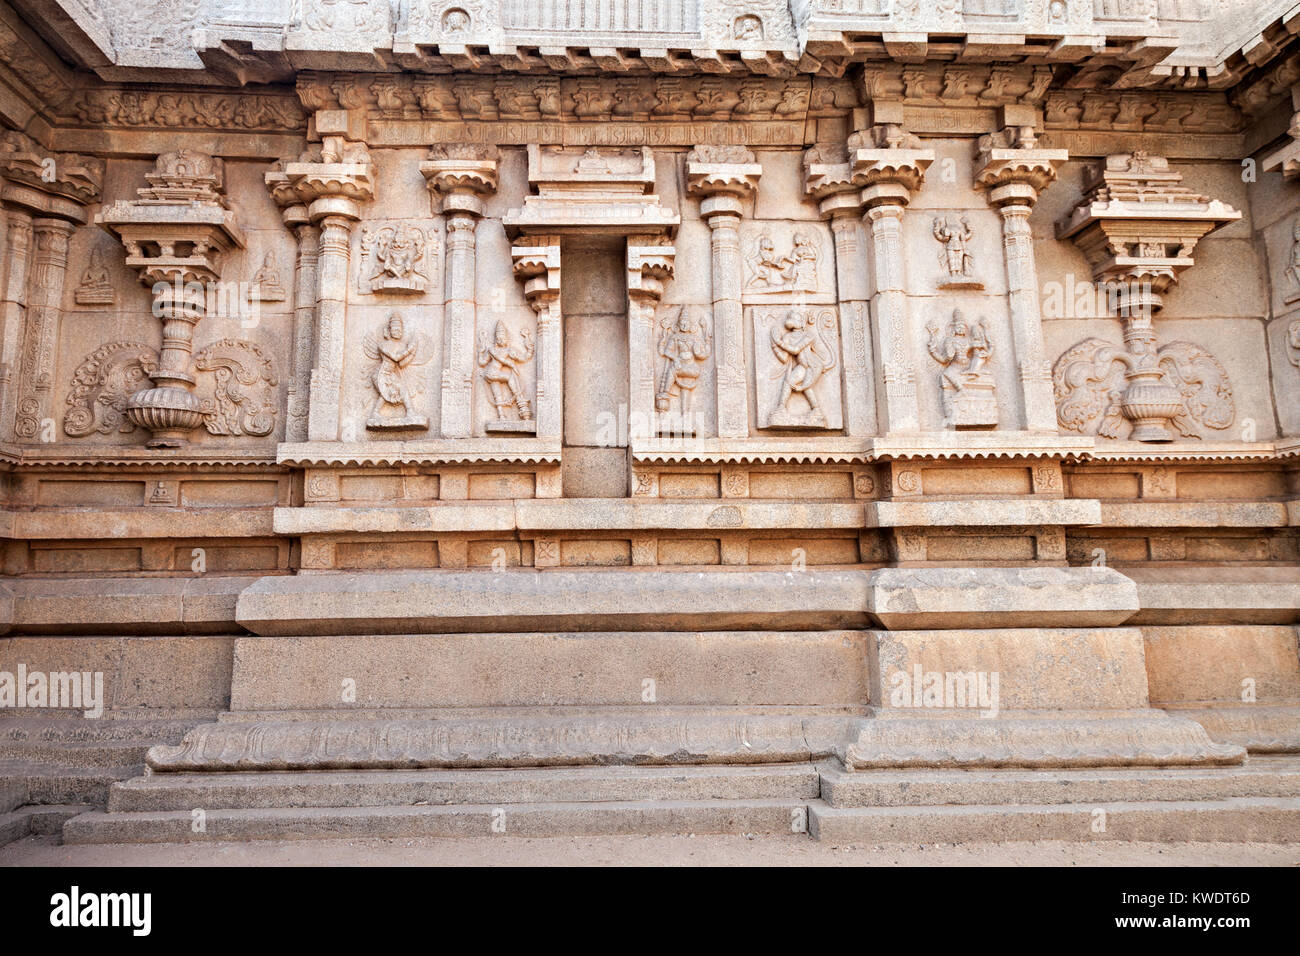 Kamasutra temple stock photos